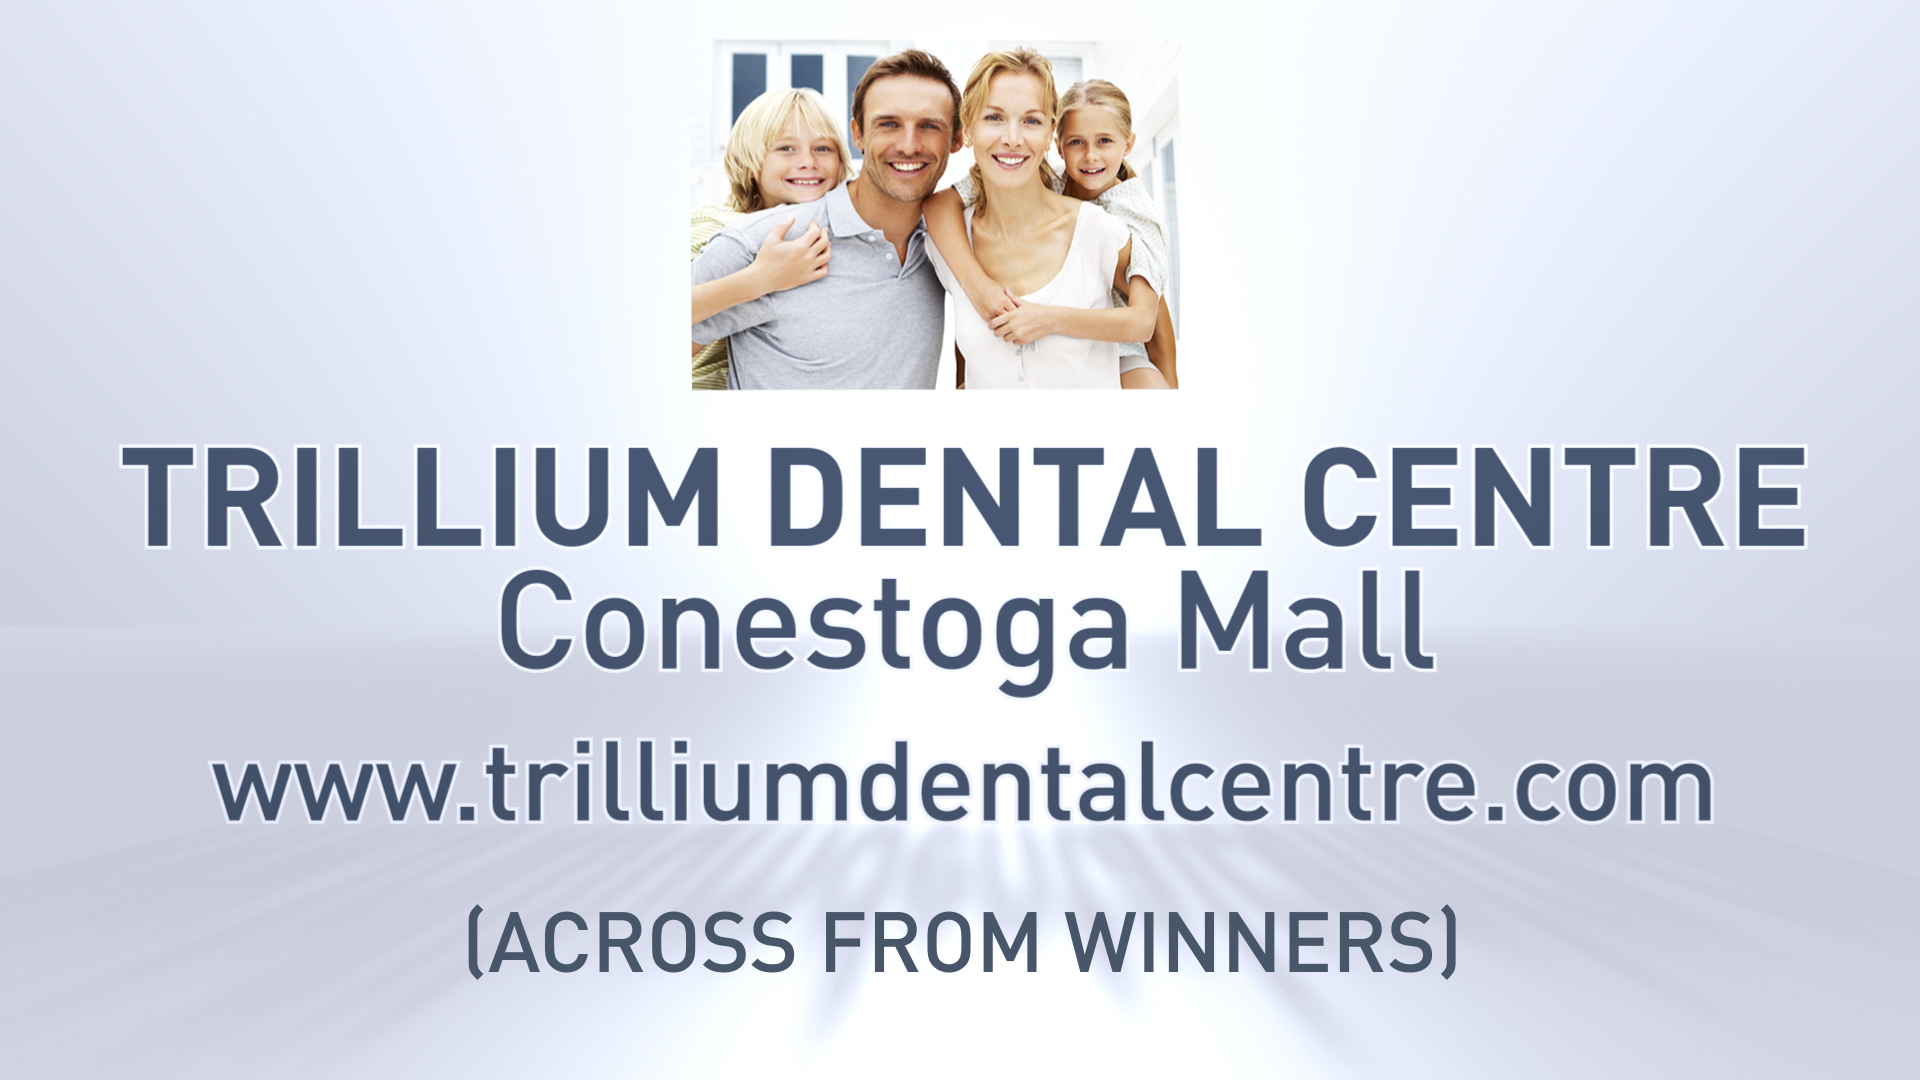 Trillium Dental Centre in Waterloo, ON (located in Conestoga Mall)